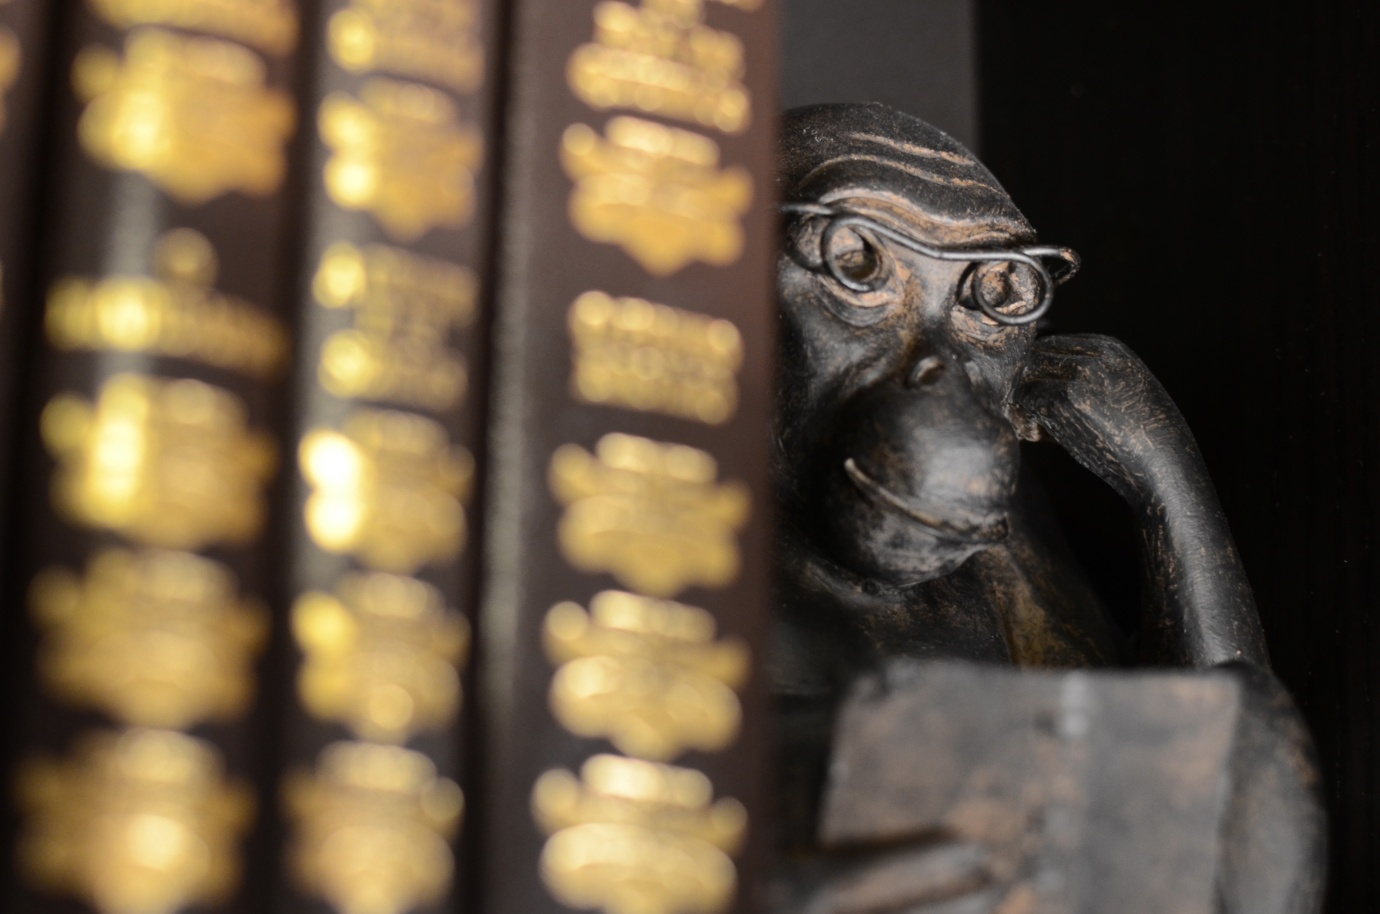 Day #032 - Monkey Reader by Daniel Antunes CC-BY-NC-ND via flickr https://www.flickr.com/photos/danielantunes/8435705107/